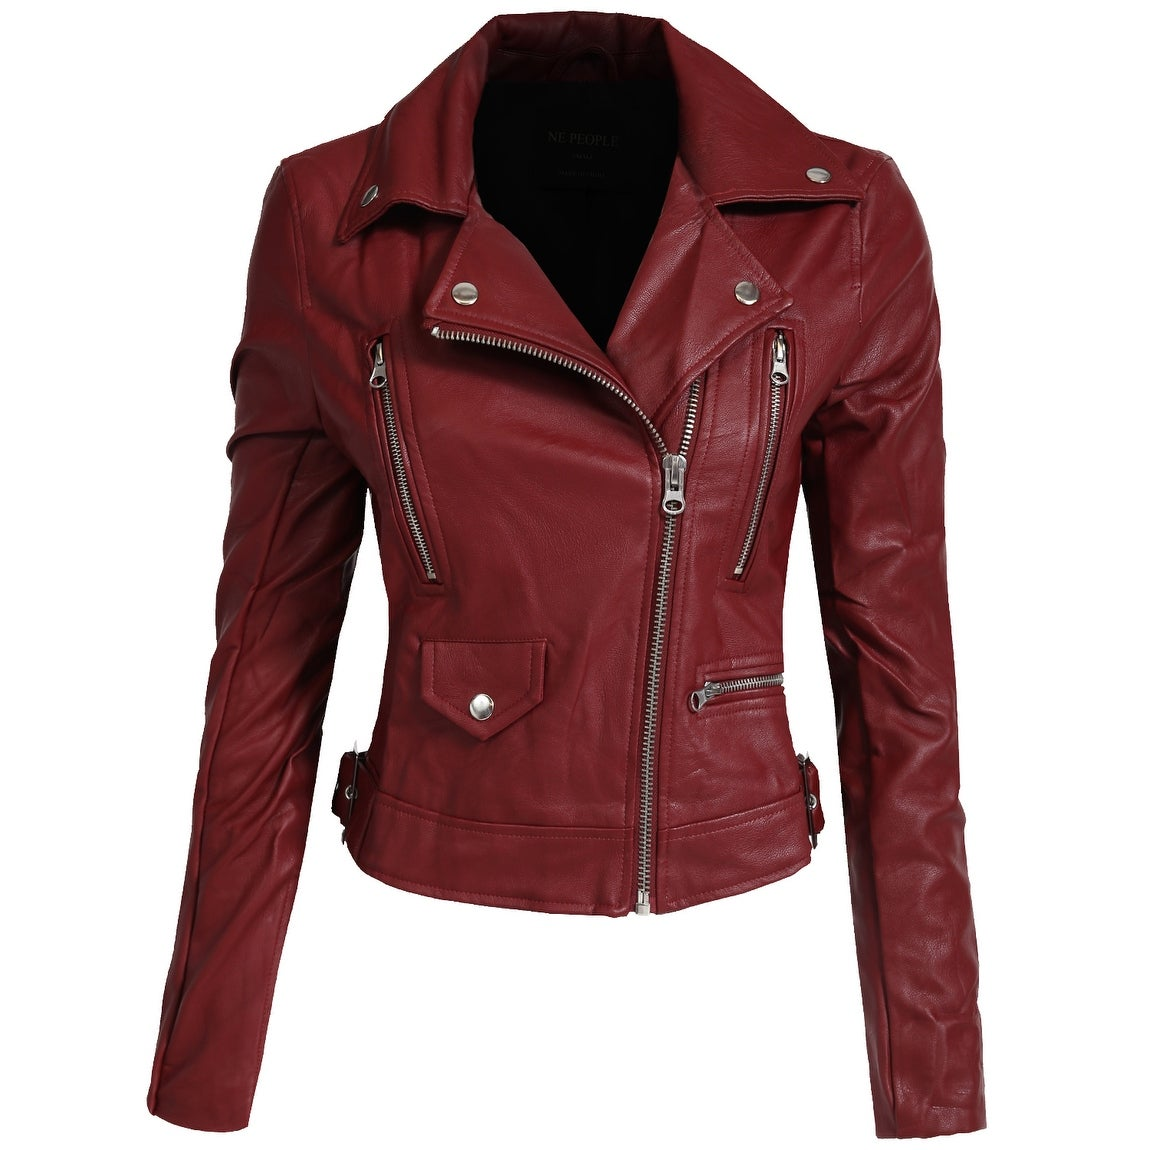 Women's Leather Short Jackets SSP 001